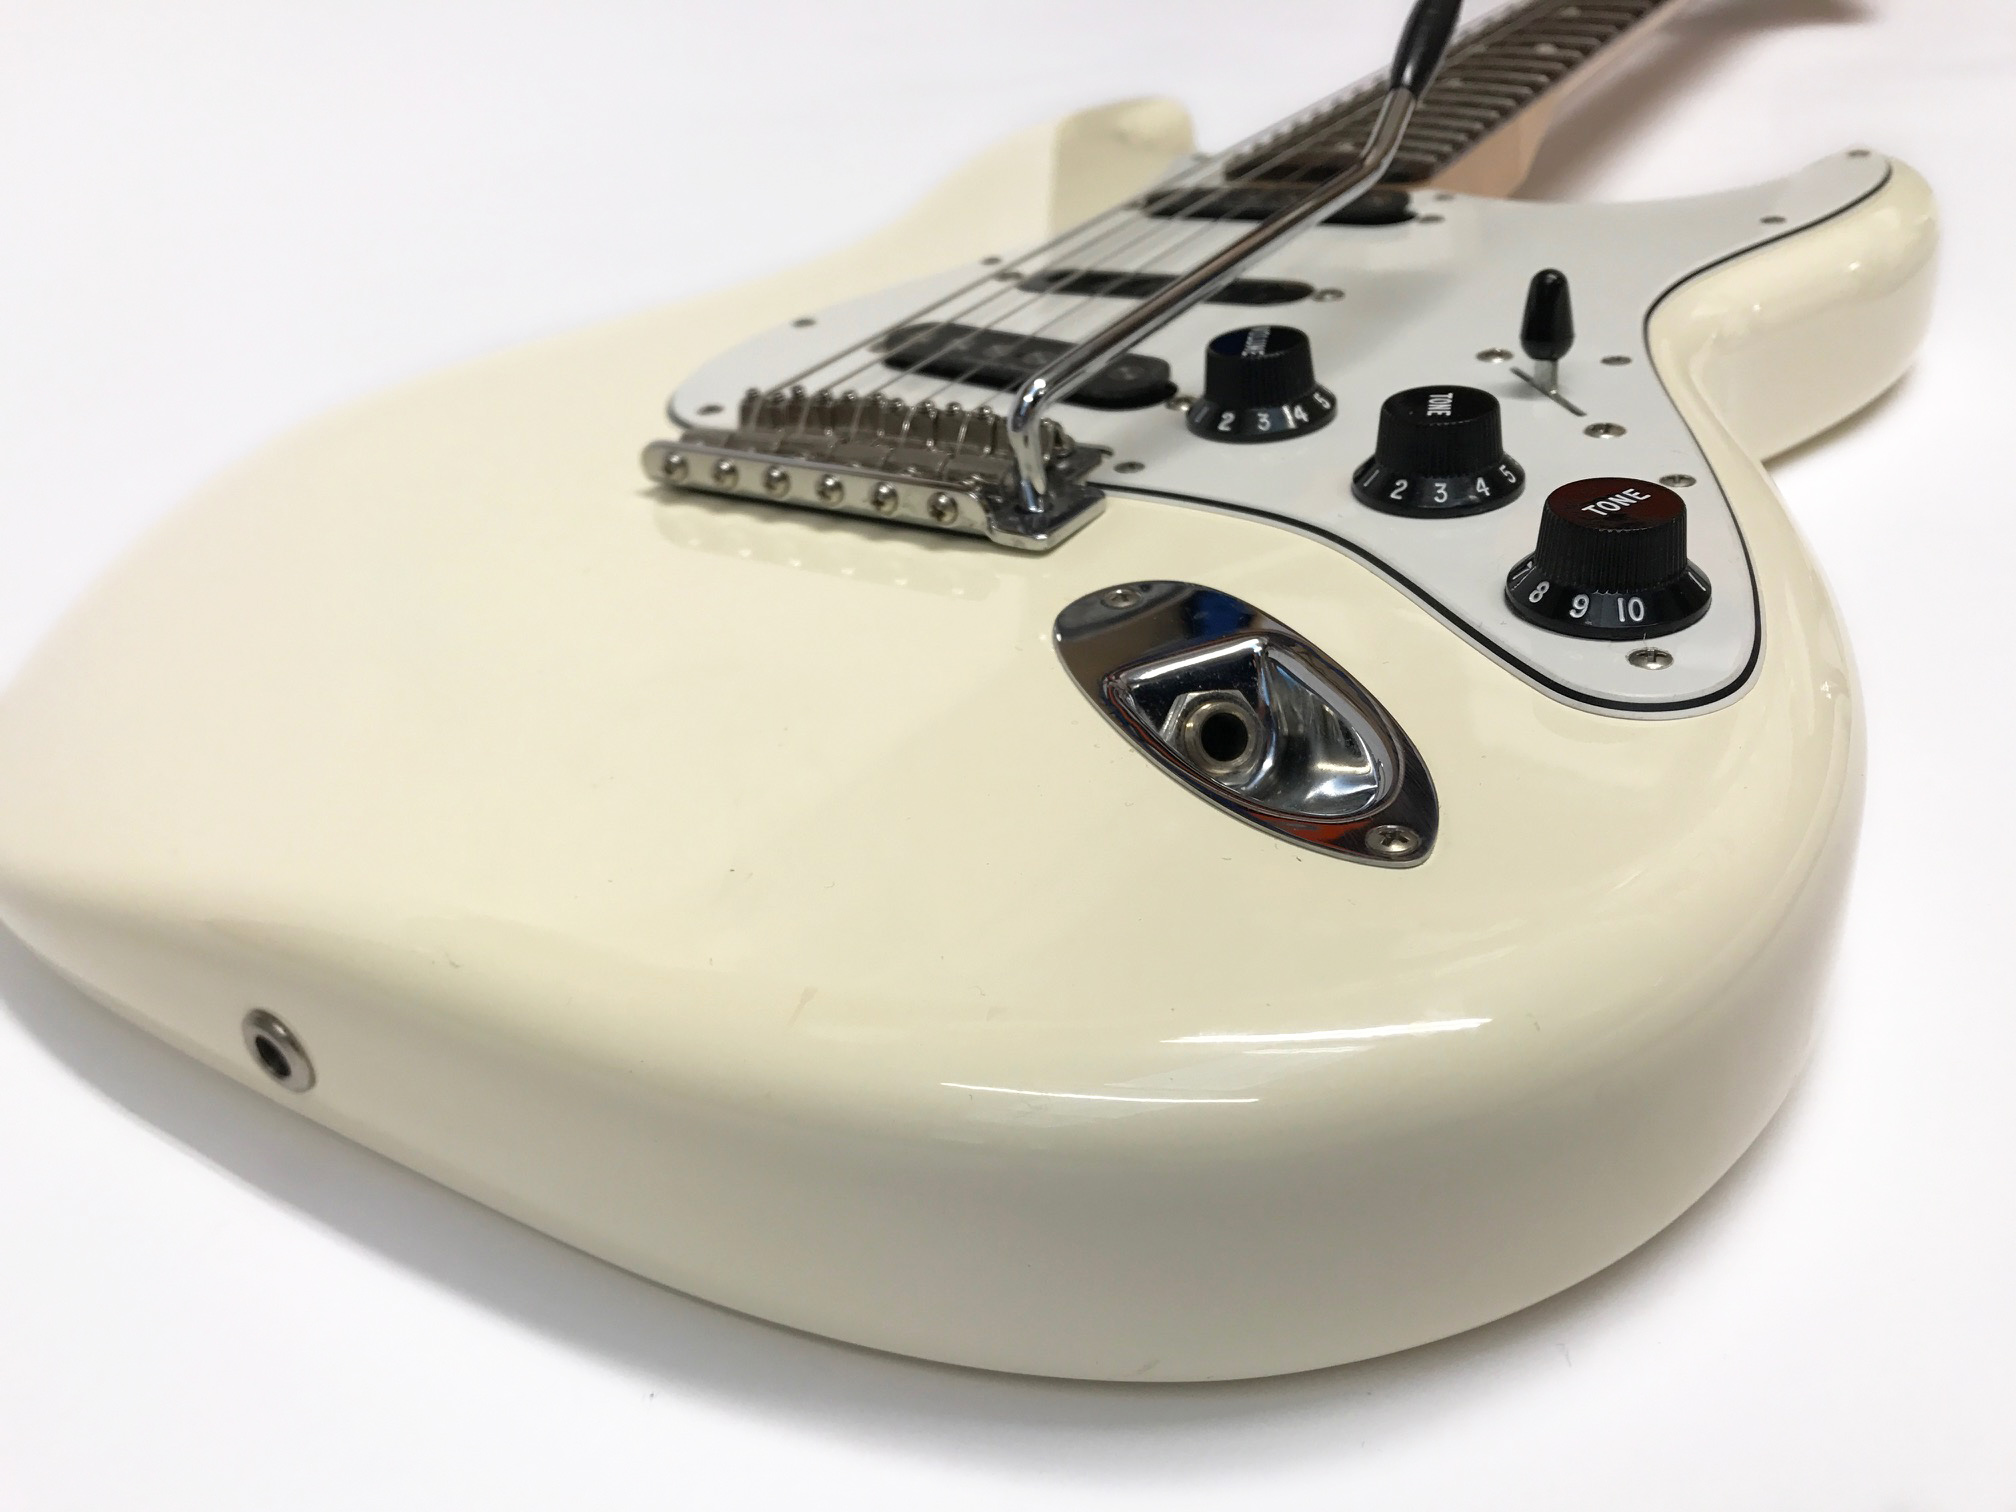 medium resolution of  fender stratocaster ritchie blackmore signature edition pre owned 2011 white